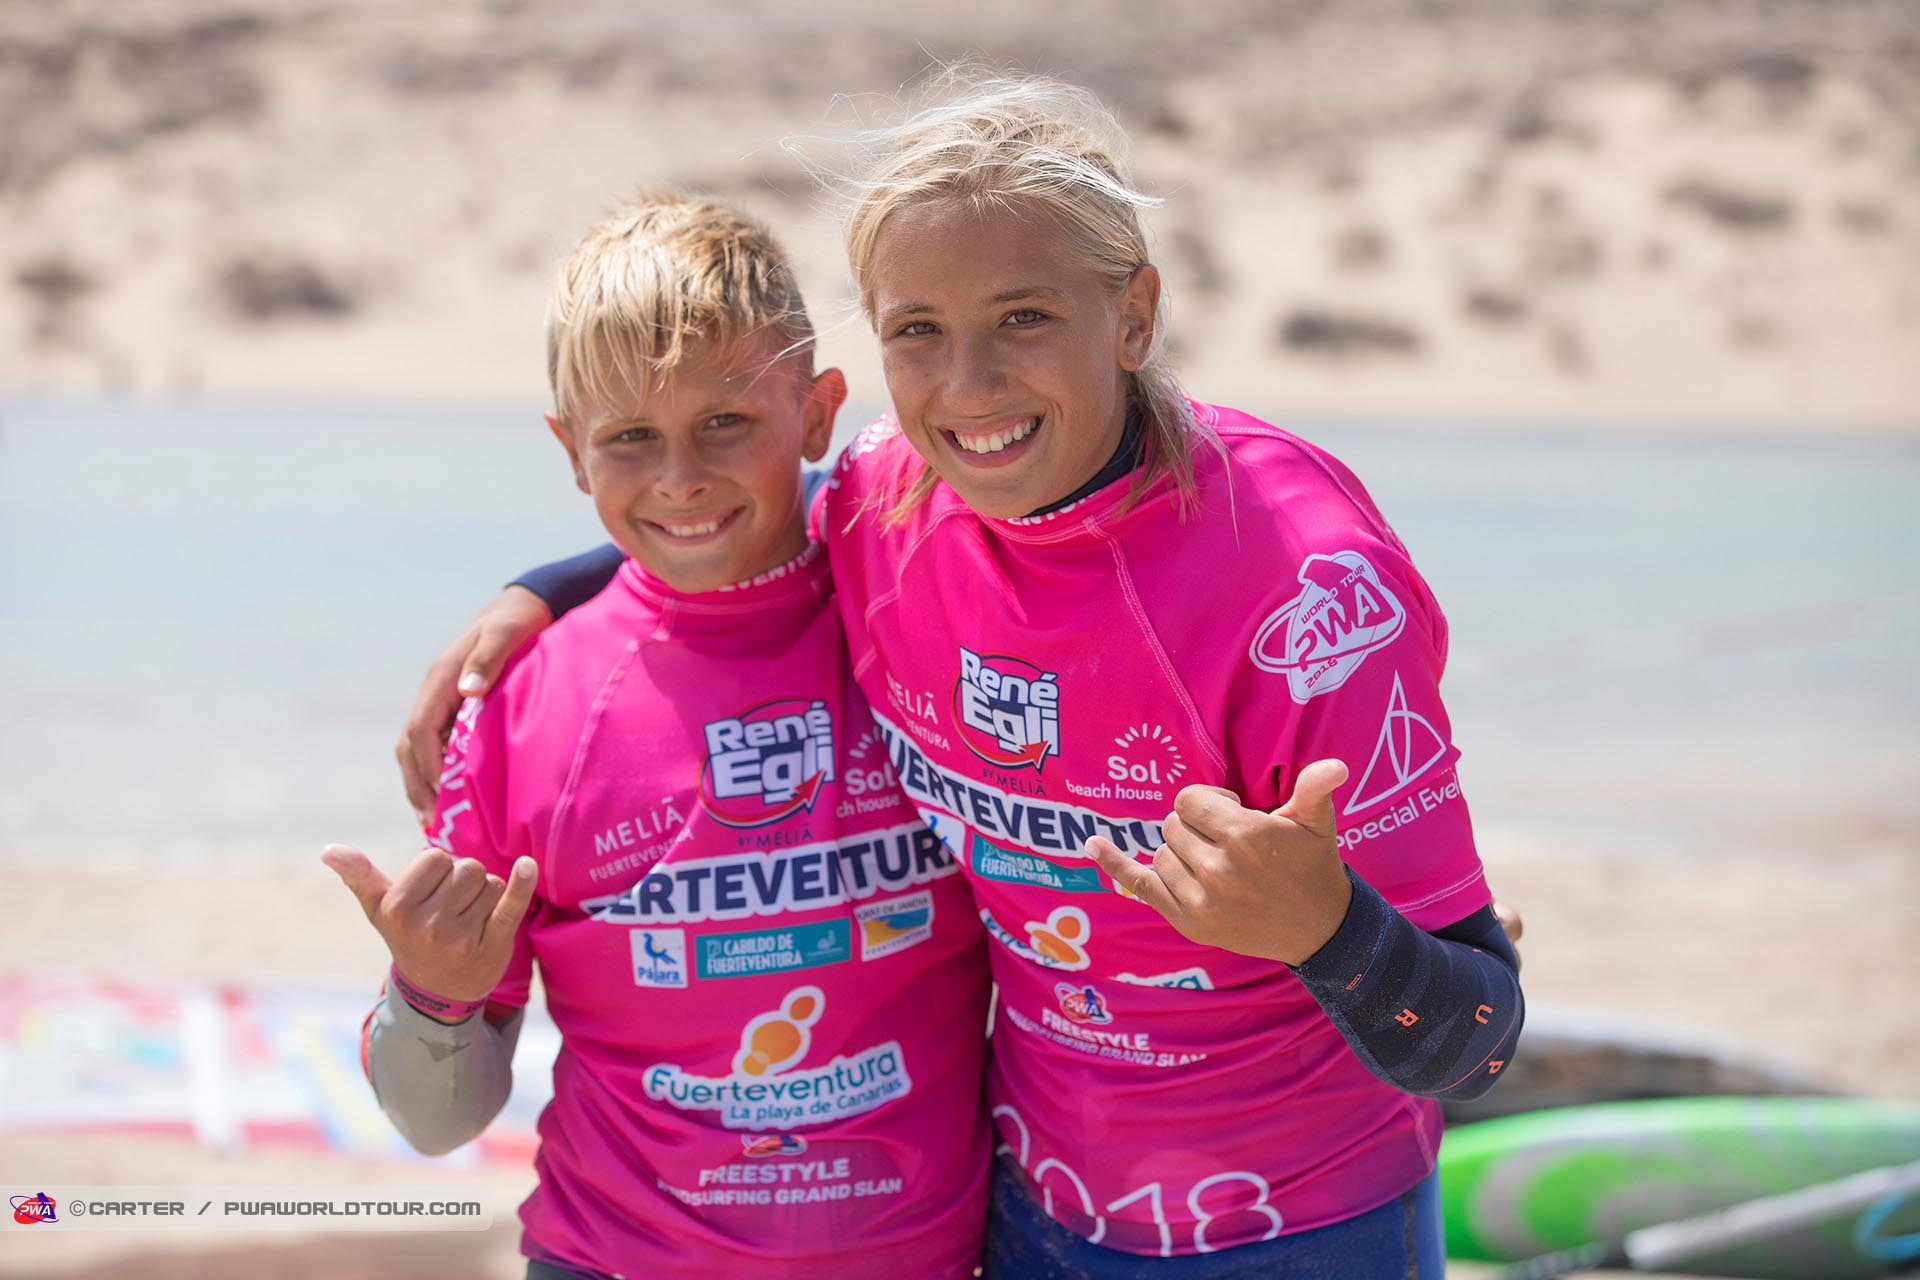 Lina-Val-Erzen-windsurf-Team-rider-Flikka-boards